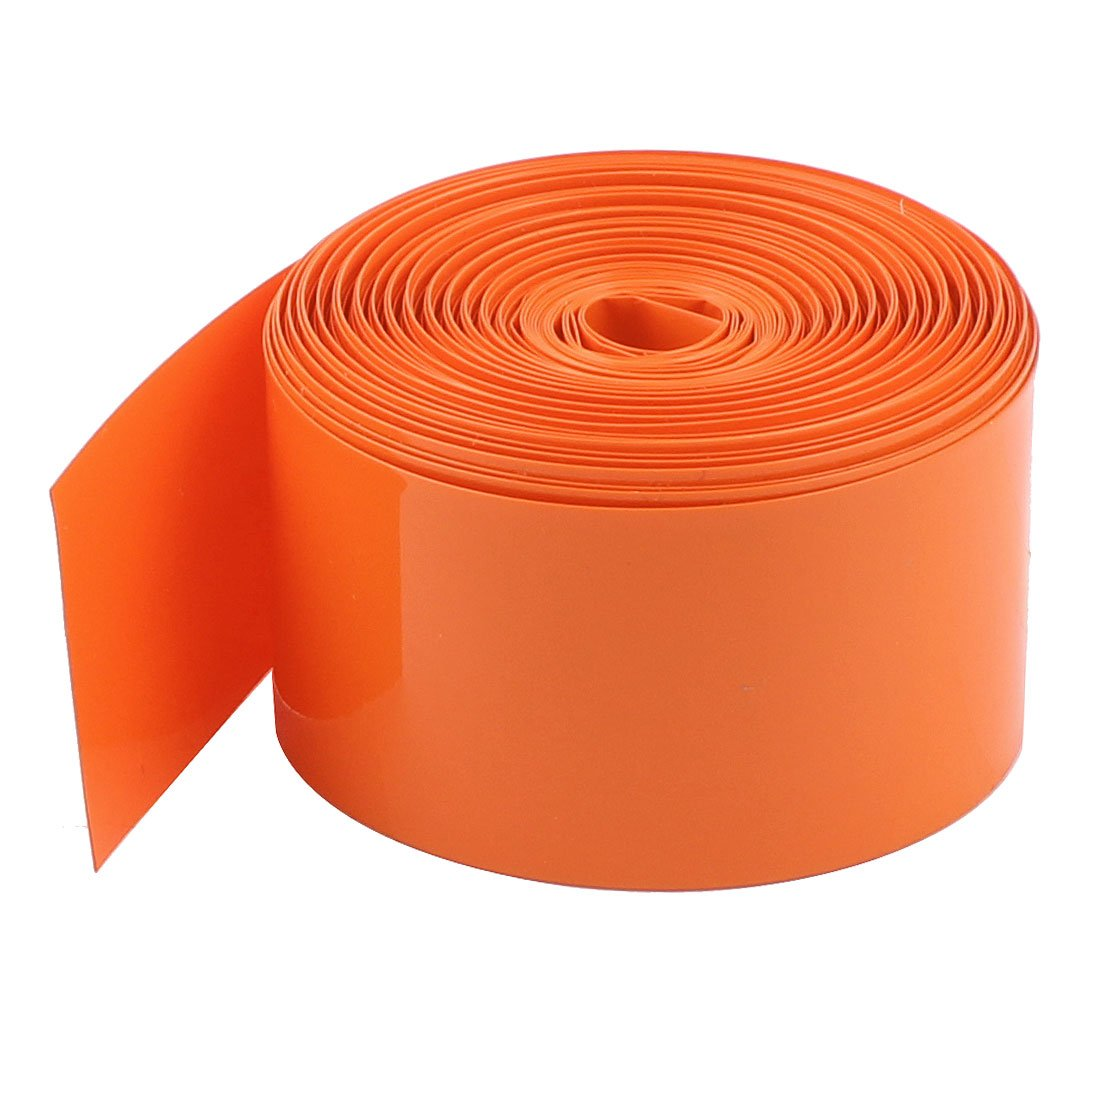 Uxcell PVC Heat Shrink Tubing Wrap, 10 m, 33' for 18650 Battery, 29.5 mm, Orange 33' for 18650 Battery a15012900ux0424